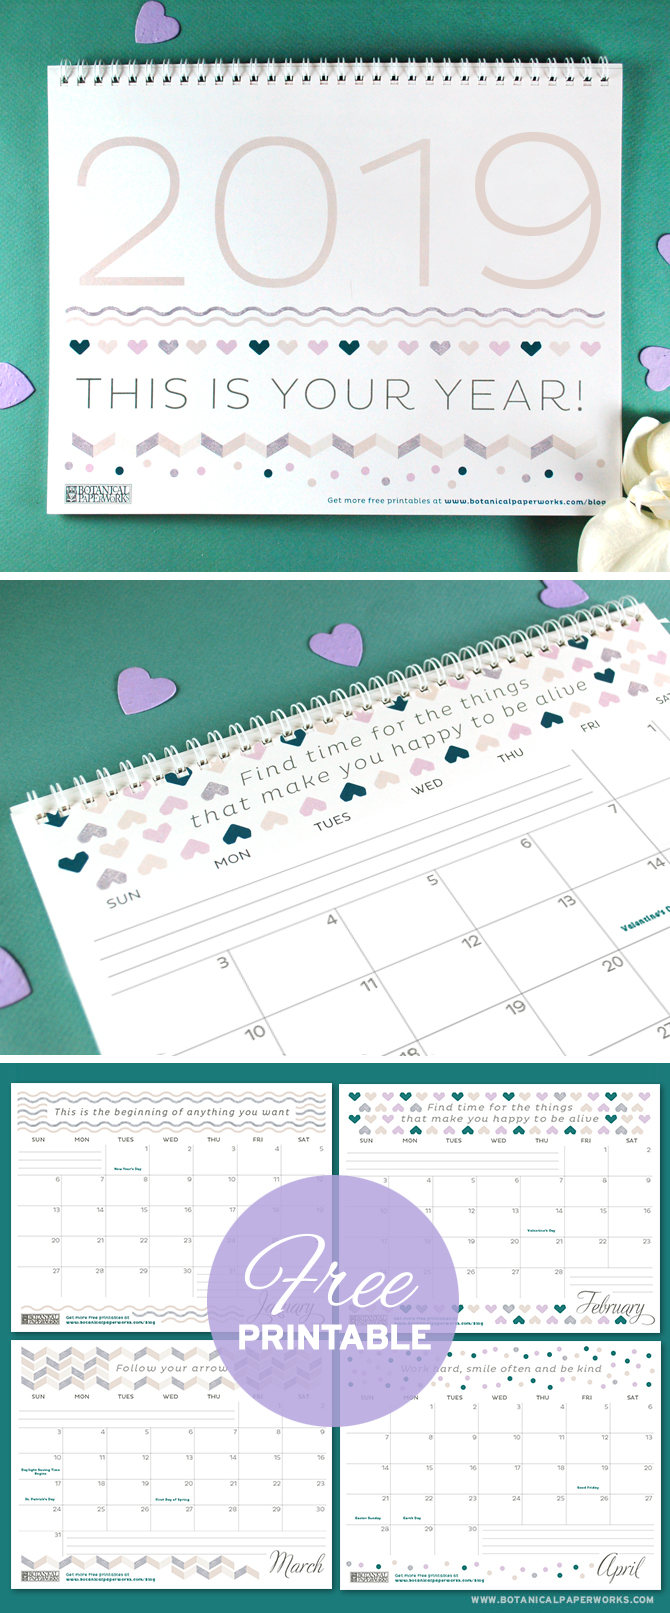 Keep track of life's special moments and feel inspired by the motivational quotes with this free printable calendar. See more designs and download your favorite 2019 calendar on our blog!